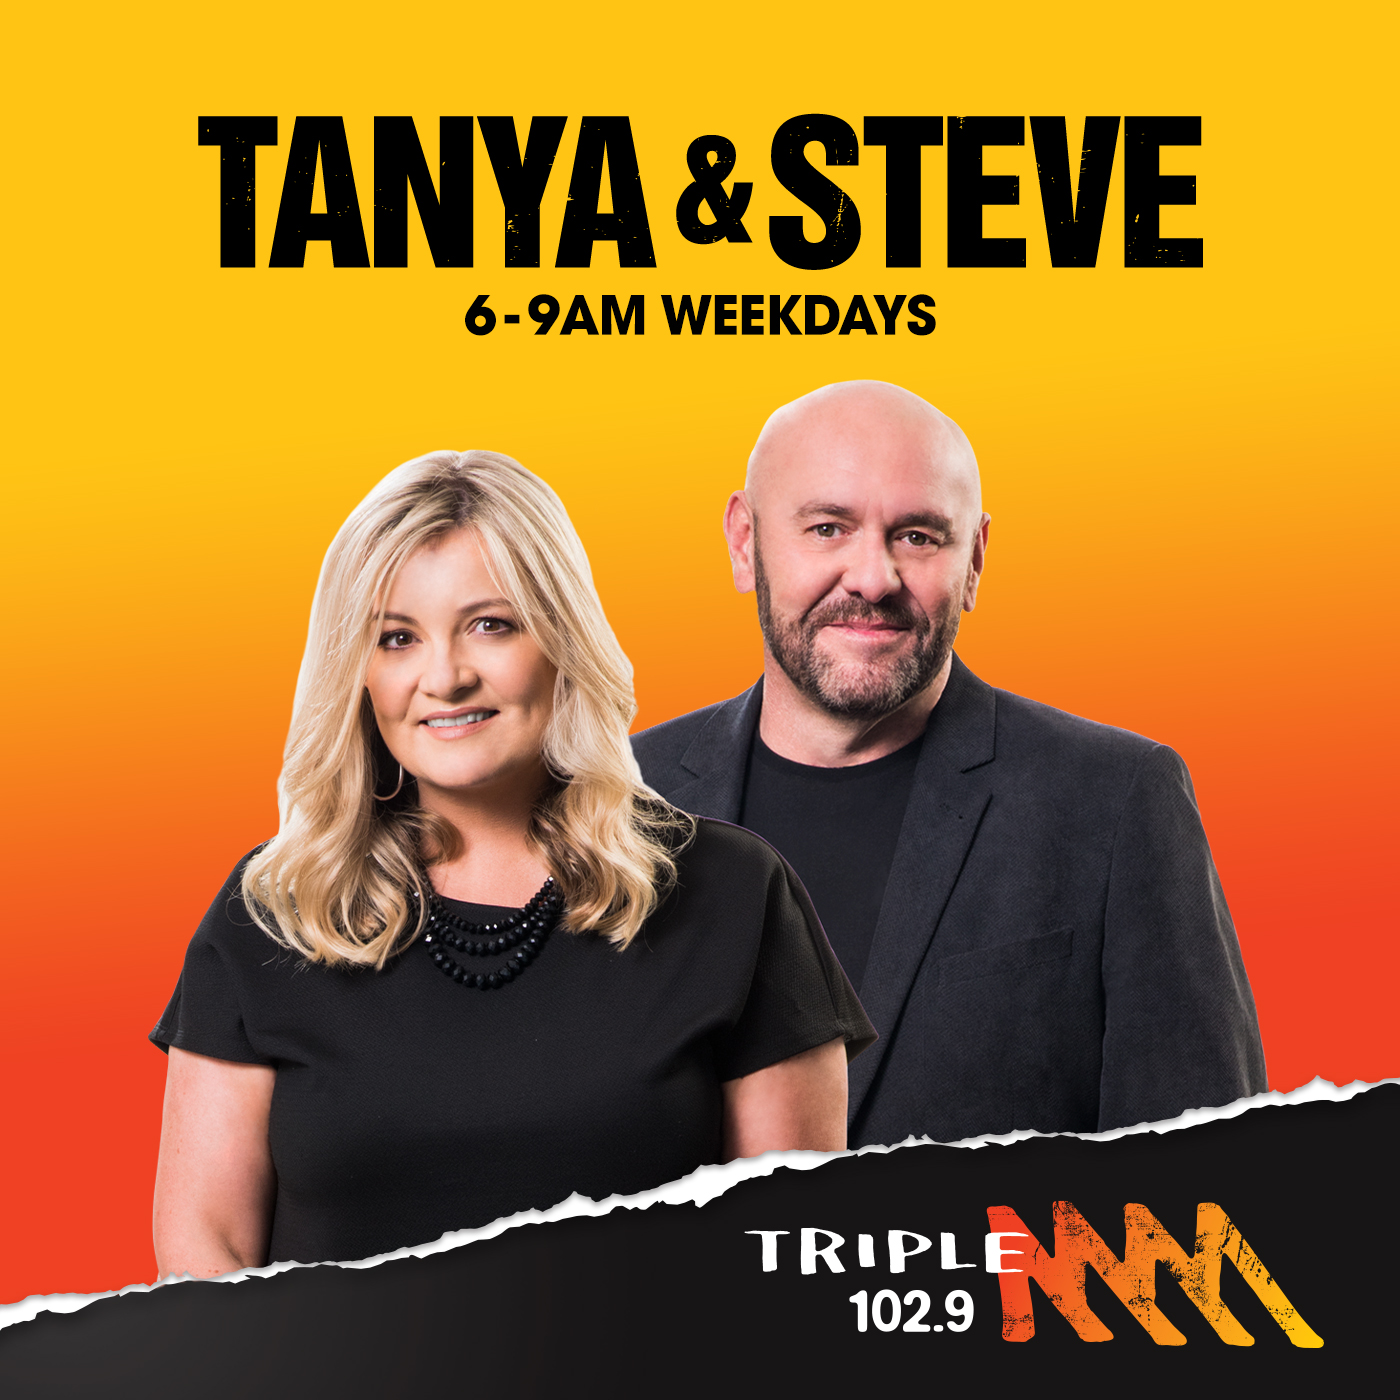 Tanya & Steve find out where they came from with Ancestry.com.au